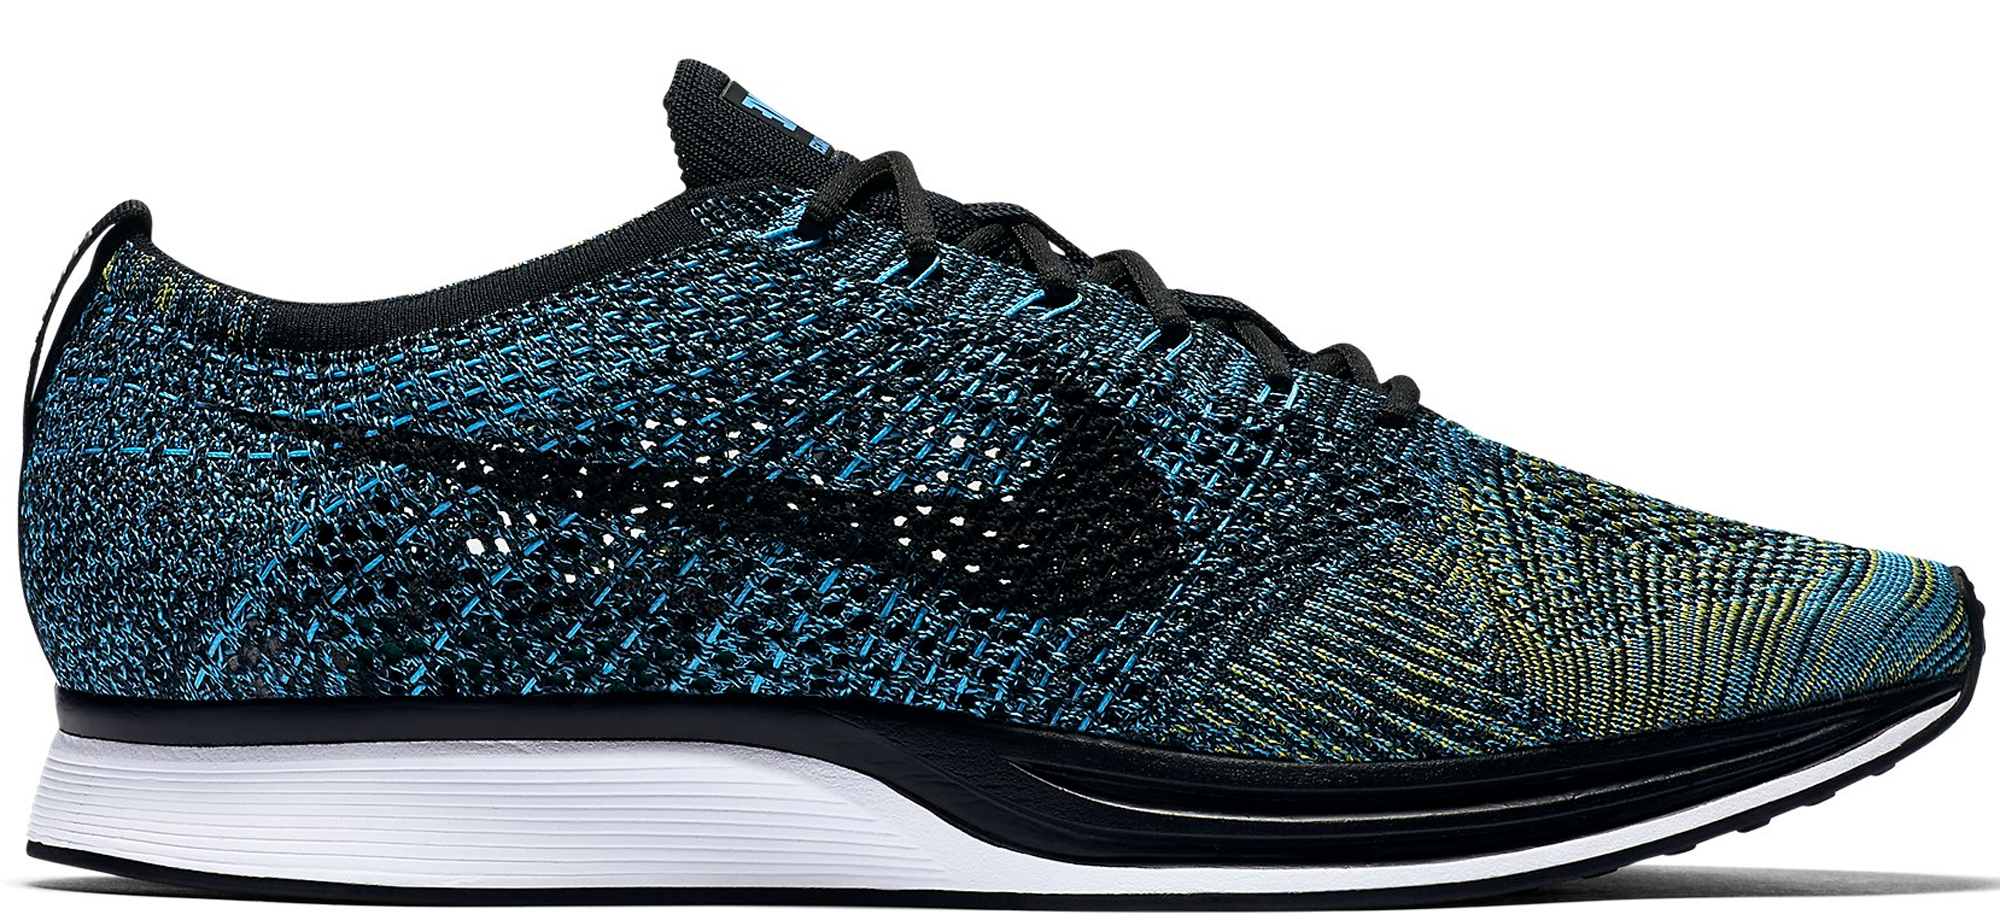 Nike Flyknit Racer Blue Glow Yellow Strike - StockX News 2f8a27f5b